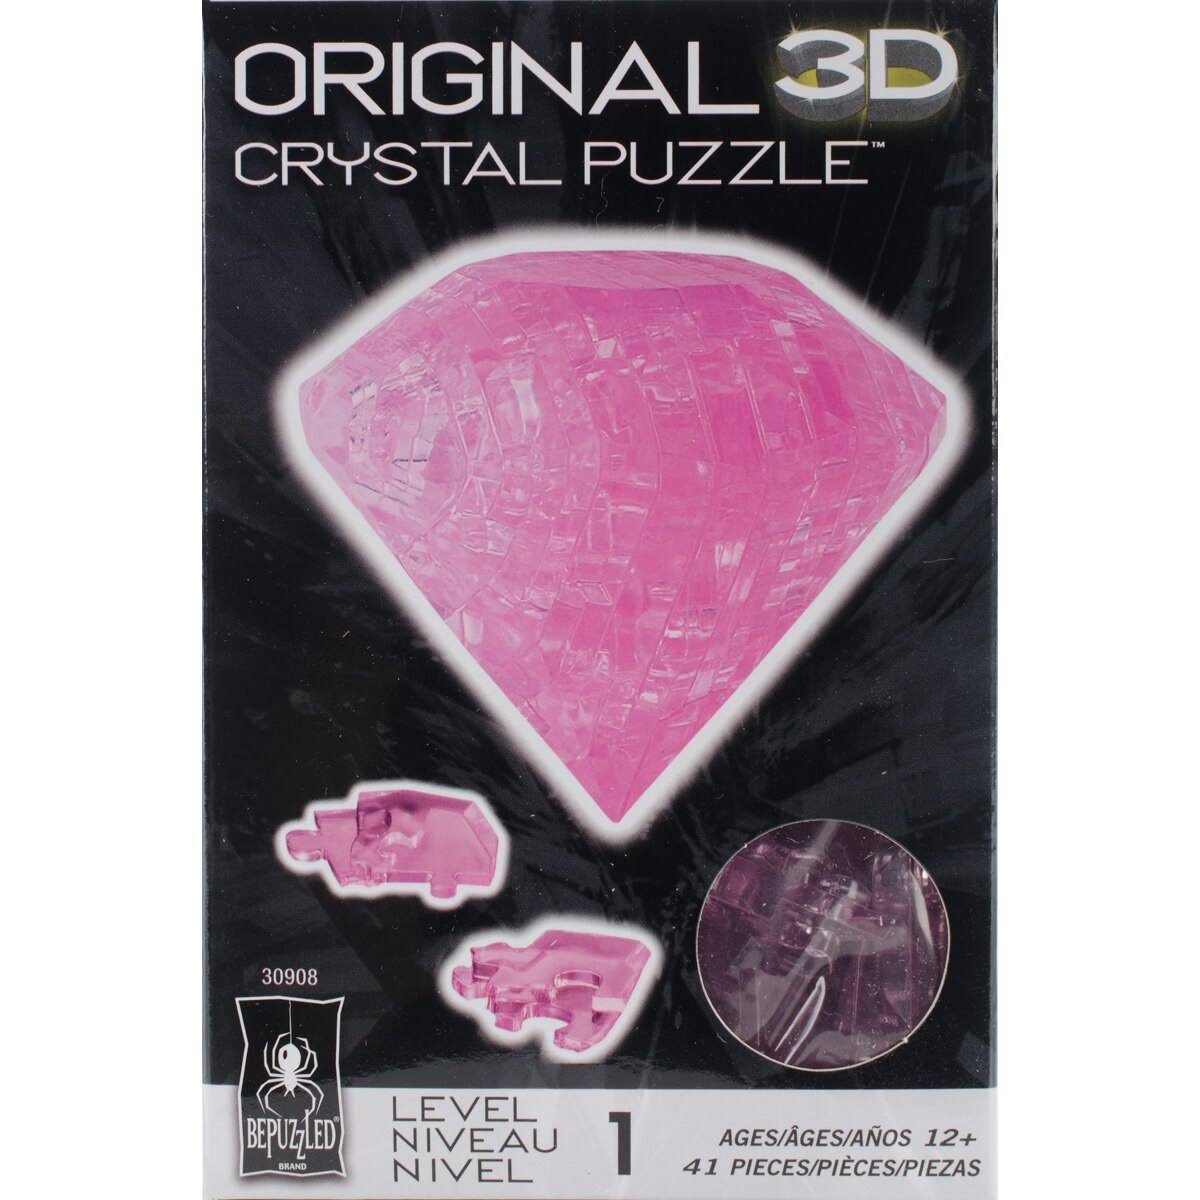 Original 3D Crystal Puzzle - Pink Diamond